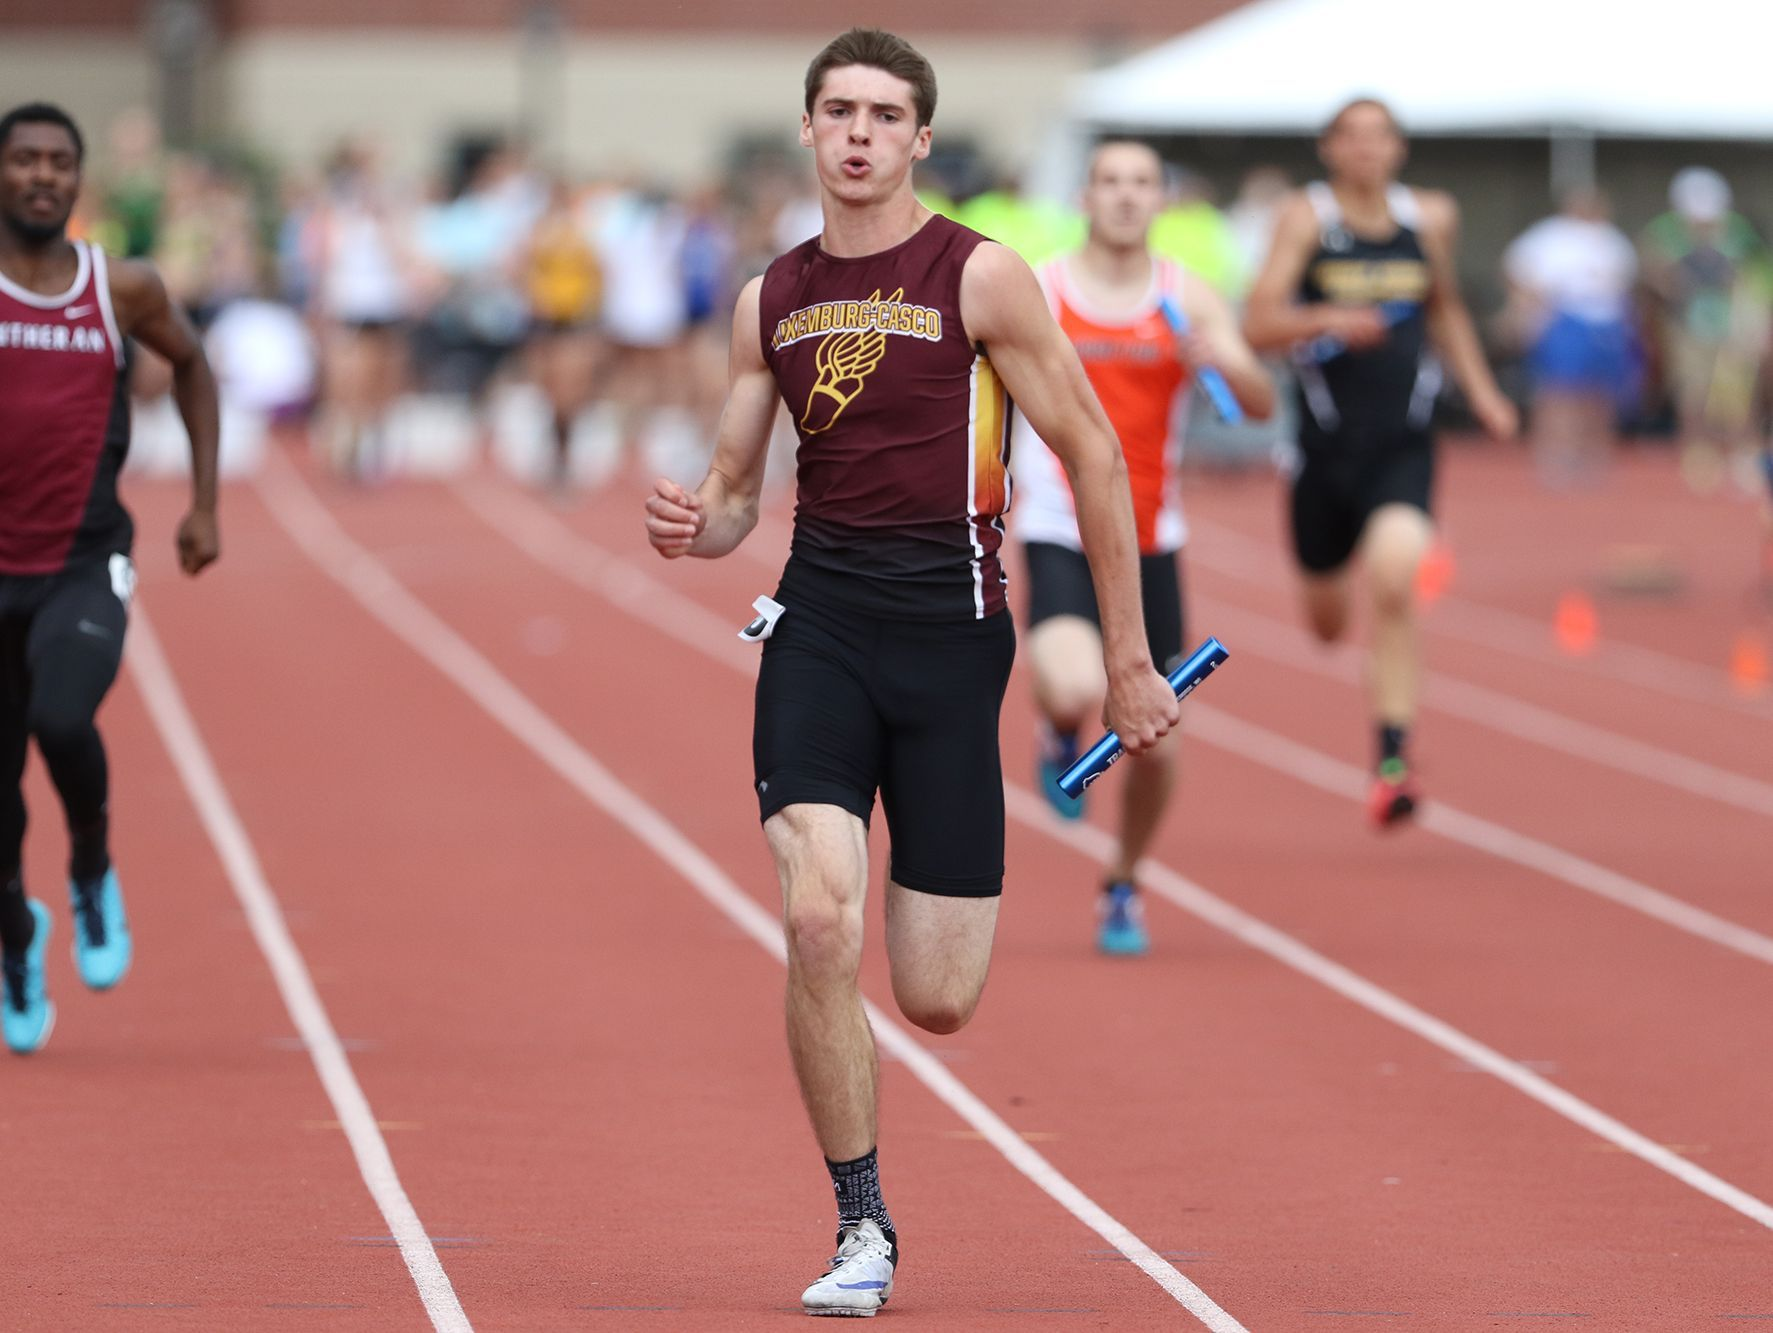 Luxemburg-Casco's Tyler Suess, shown at last year's WIAA state track and field meet in La Crosse, won three events to power the Spartans to the team title at the Earl Herbert Boys Indoor Invite.